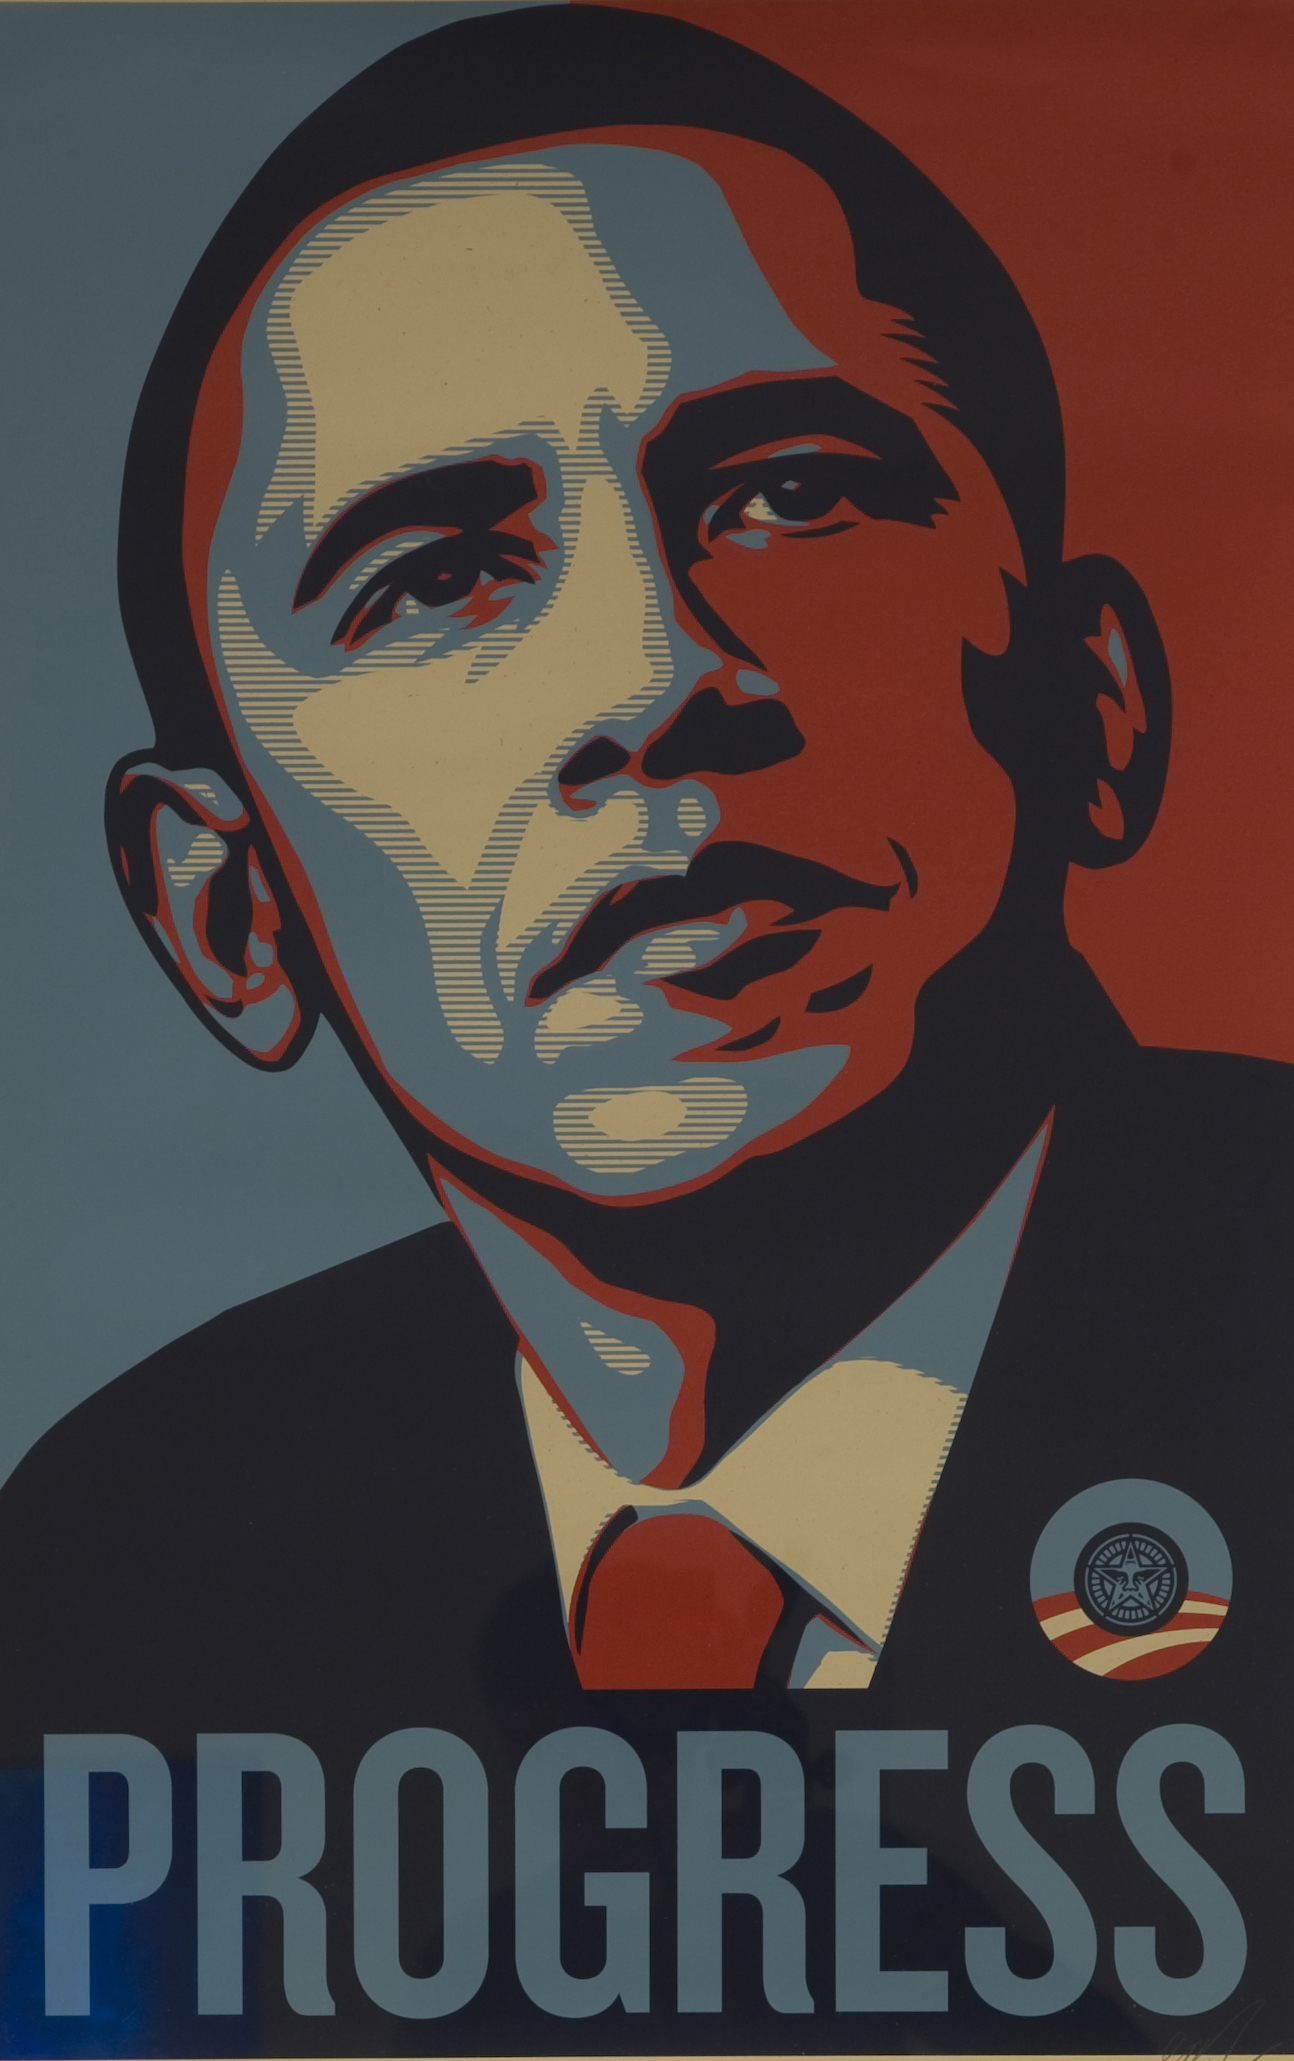 Barack Obama poster by Shepard Fairey -